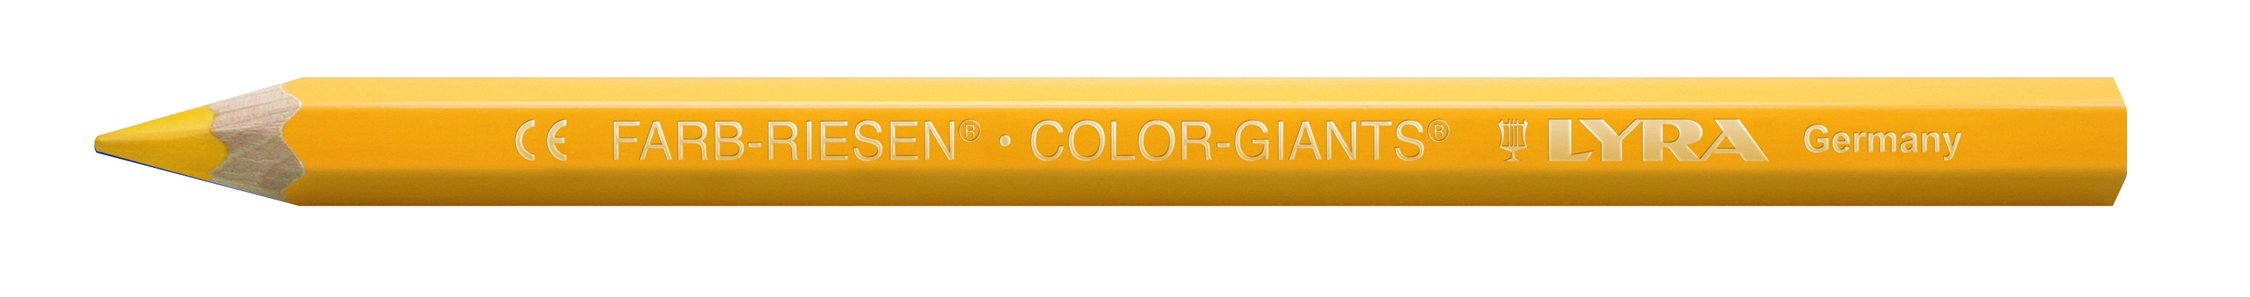 LYRA Color-Giants Colored Pencils, Lacquered, 6.25 Millimeter Cores, Set of 18 Pencils, Assorted Colors (3941181) by Lyra (Image #3)